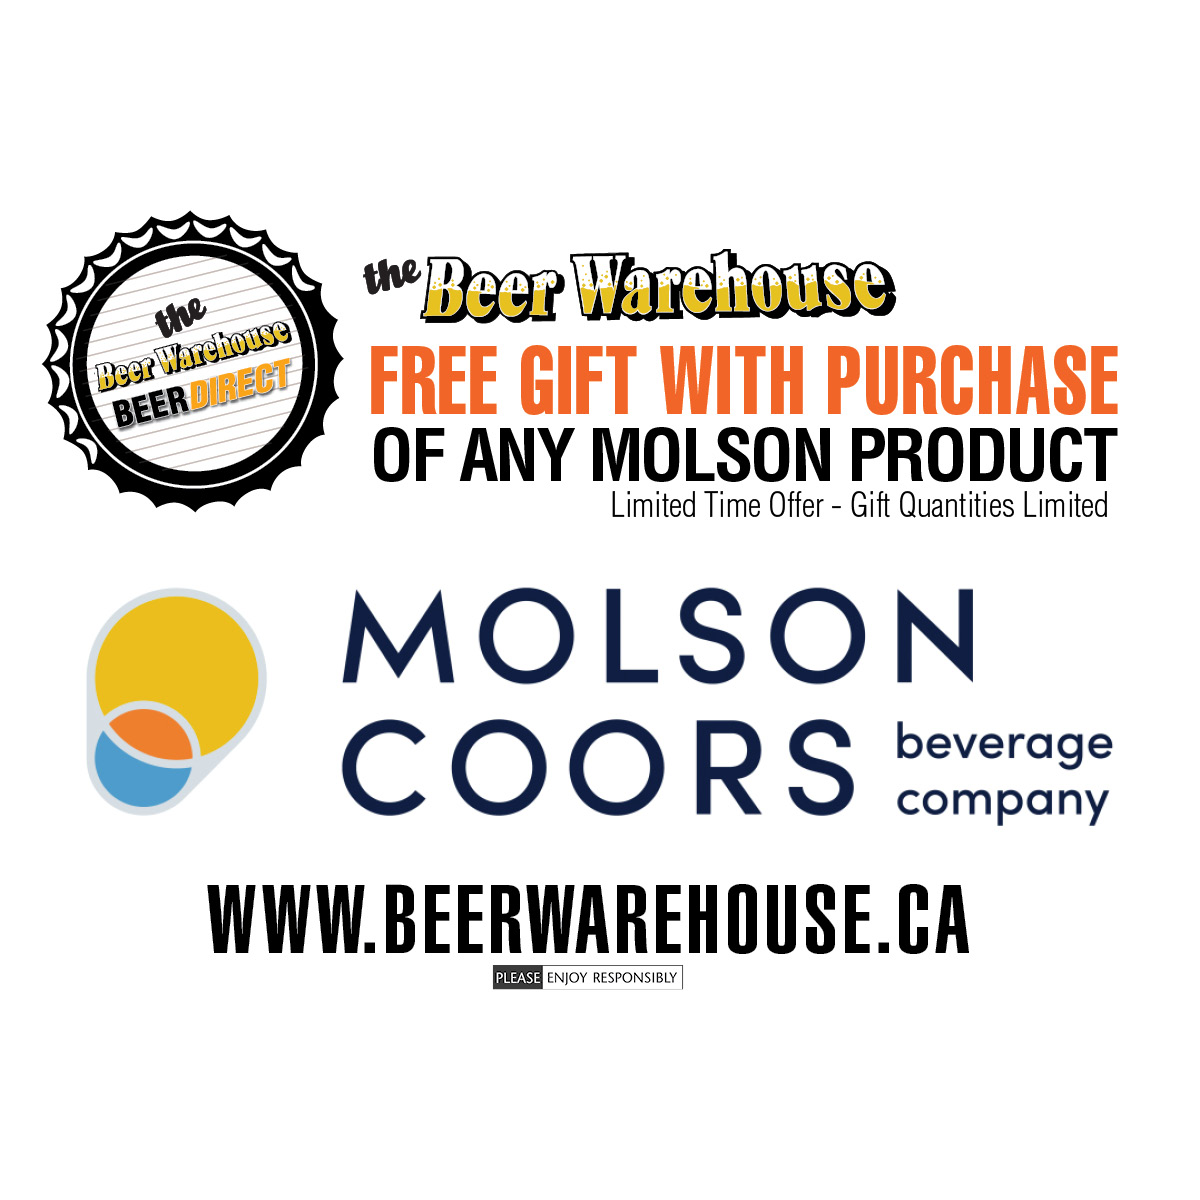 Order a Molson Product from the https://t.co/AJlKOiBl8n and receive a FREE gift. Limited Time Offer - Gift Quantities Limited. https://t.co/RHecvuNVSg